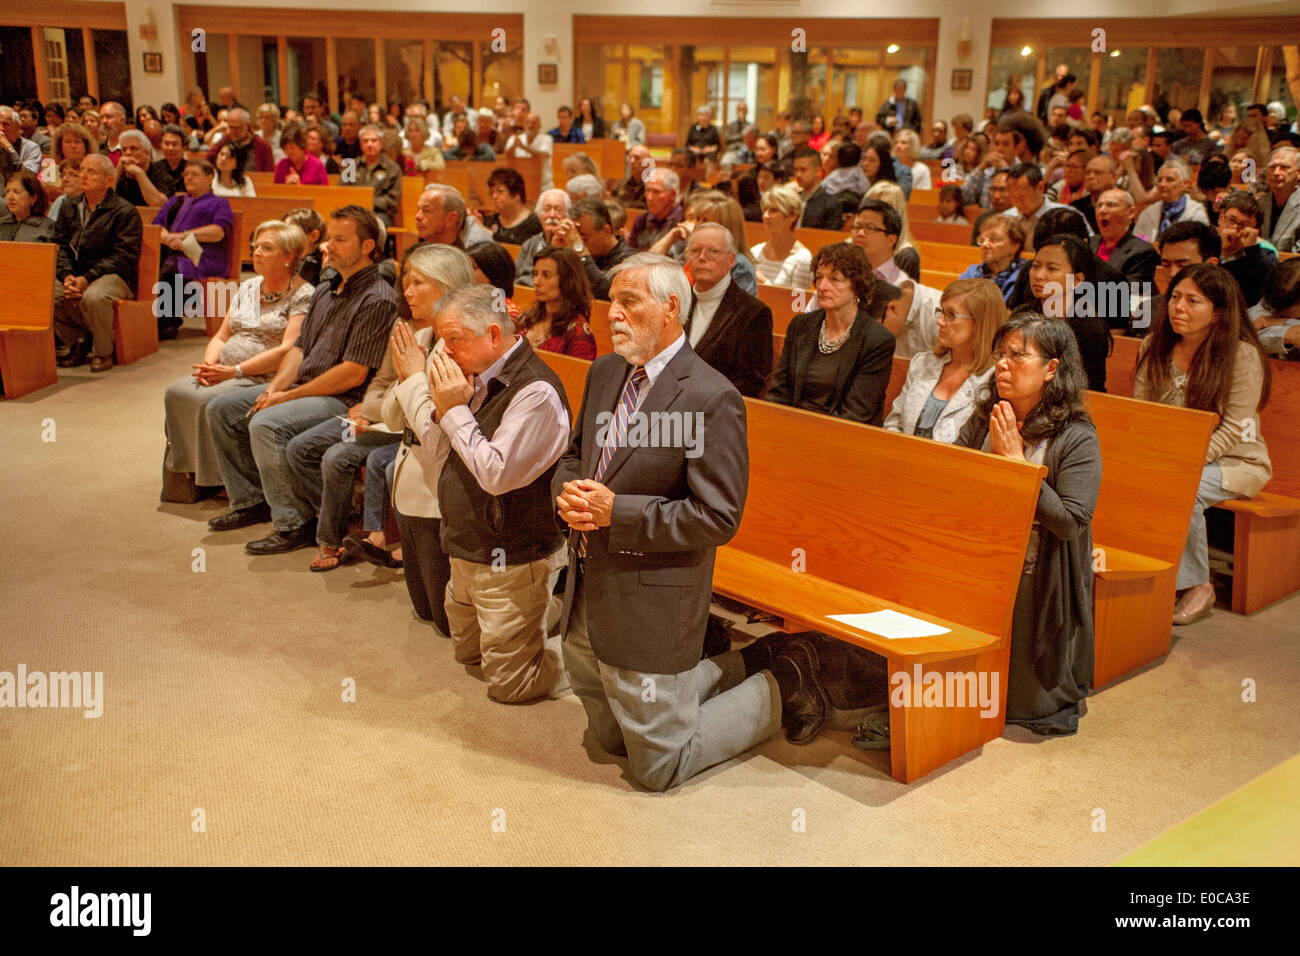 church congregation images kneel catholic stock photos kneel catholic stock images 7797